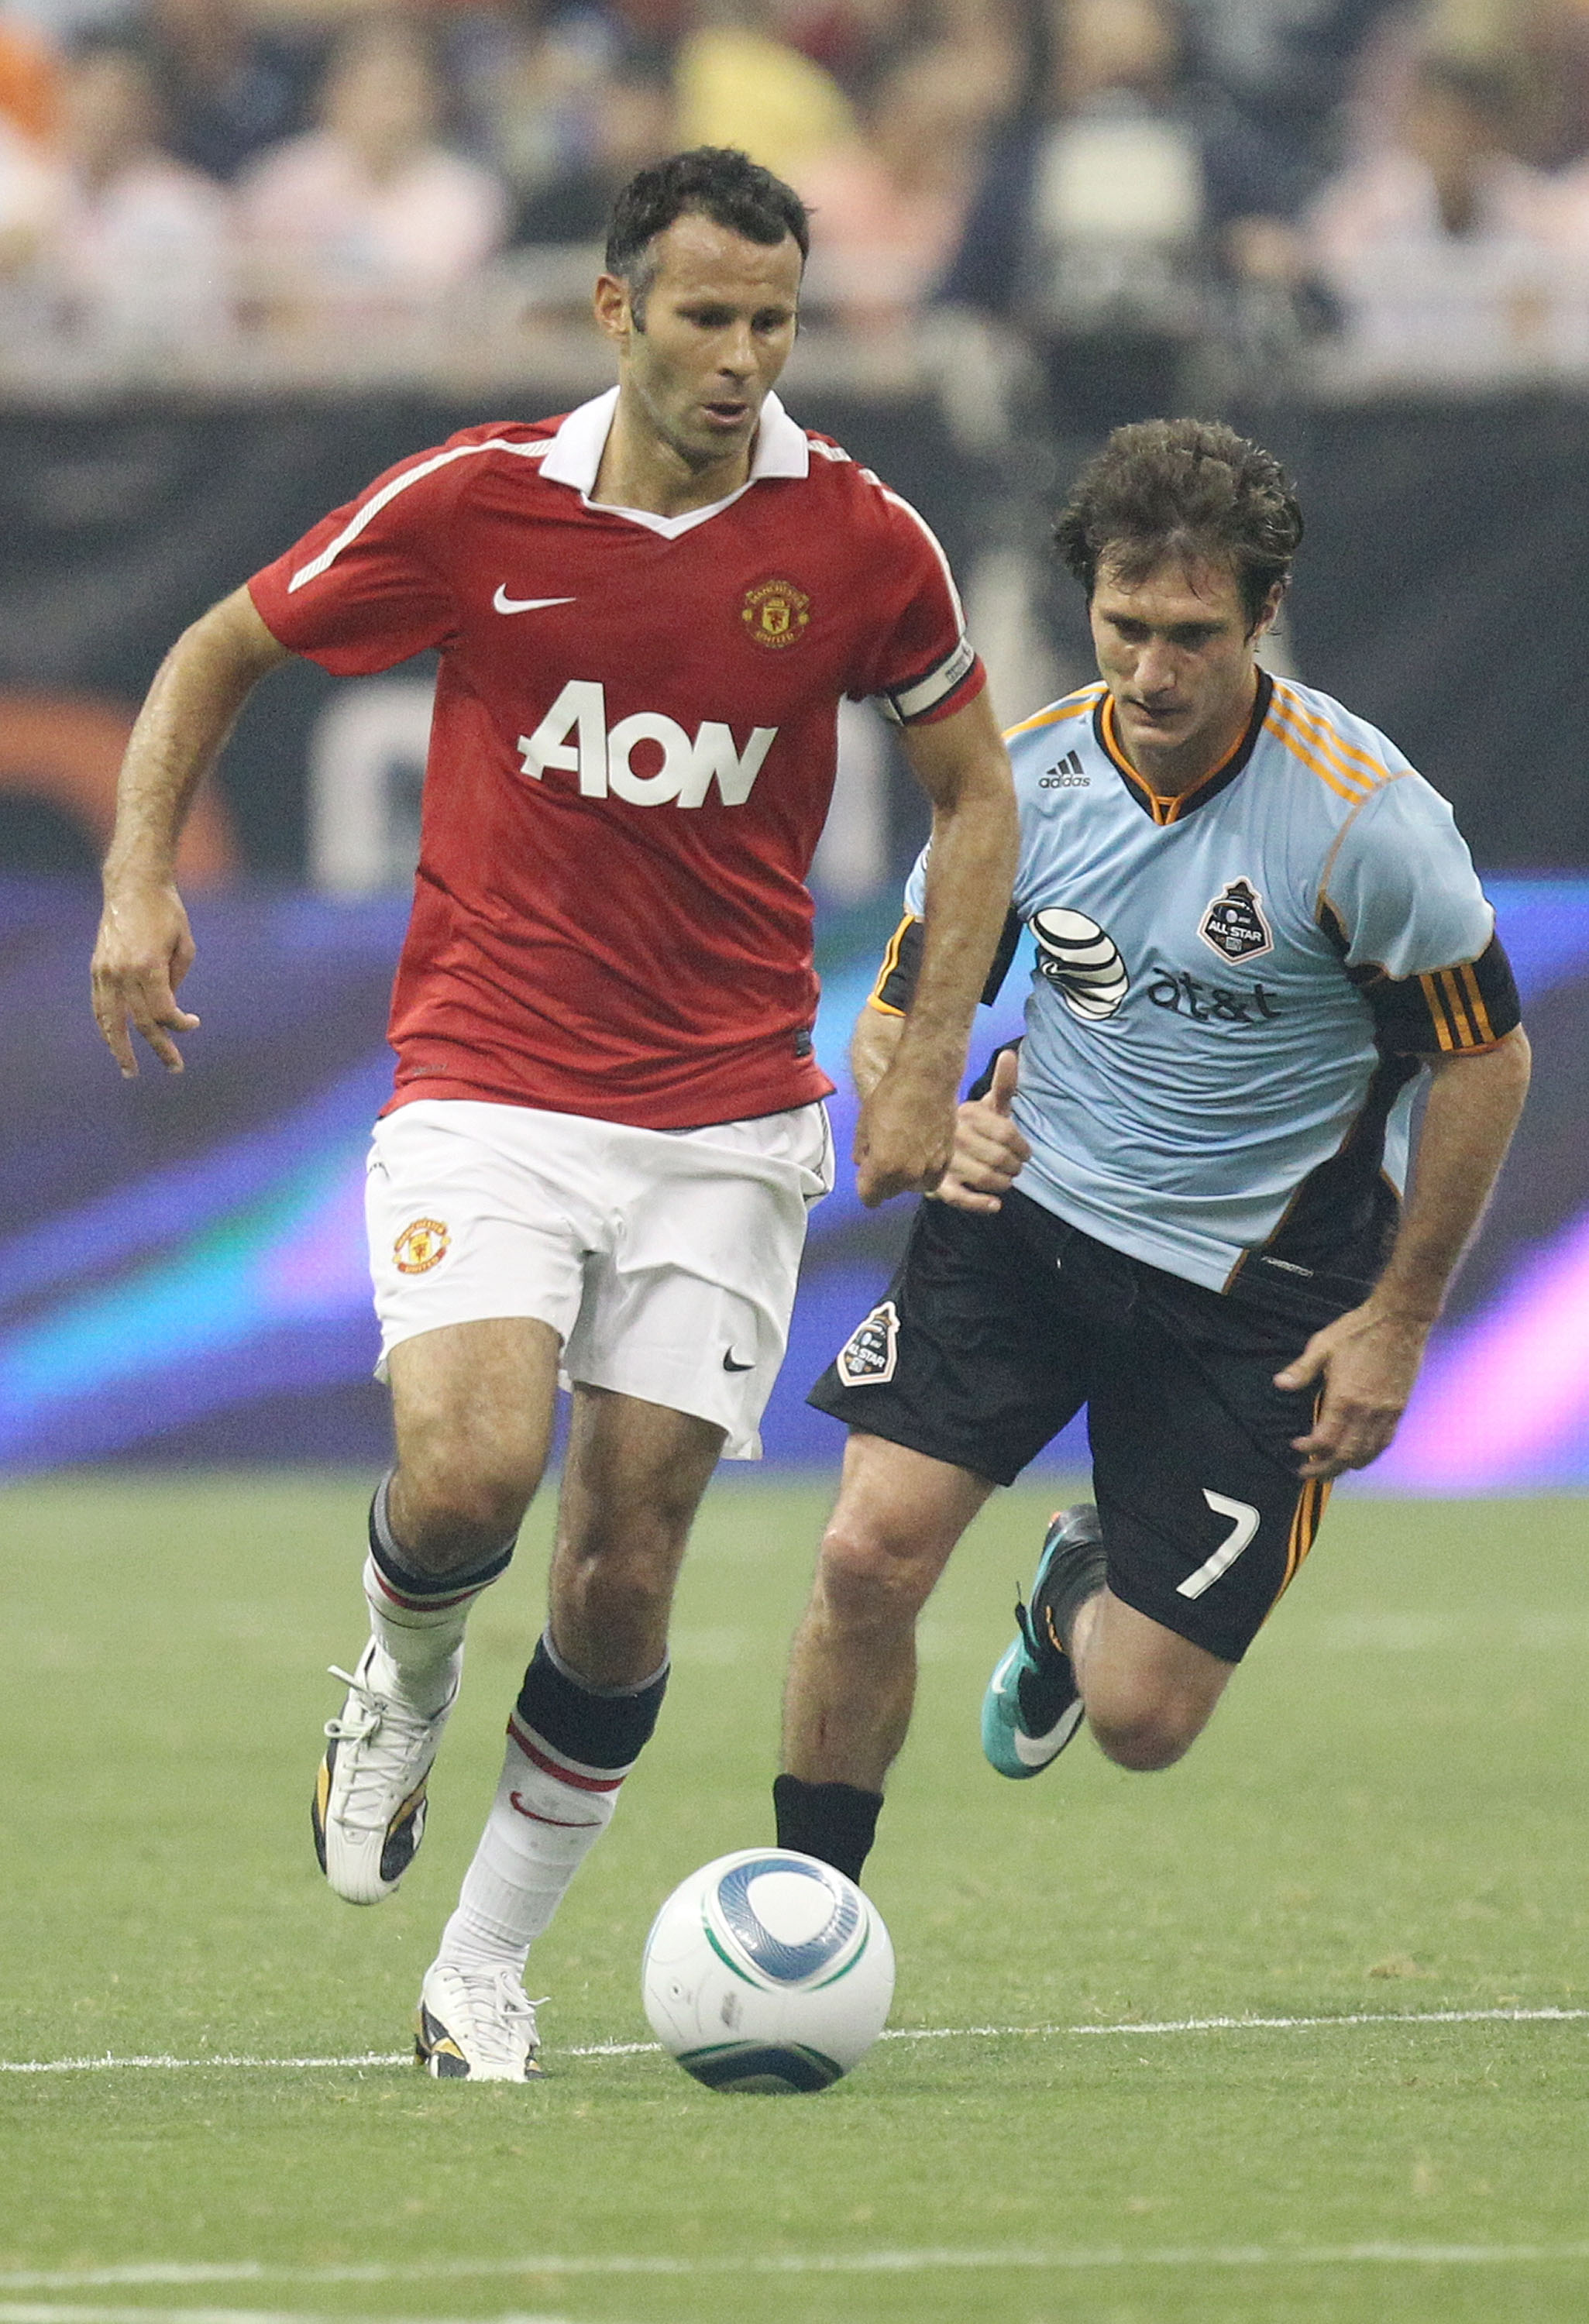 HOUSTON - JULY 28:  Ryan Giggs controls the ball during the MLS All Star Game at Reliant Stadium on July 28, 2010 in Houston, Texas.  (Photo by Ronald Martinez/Getty Images)